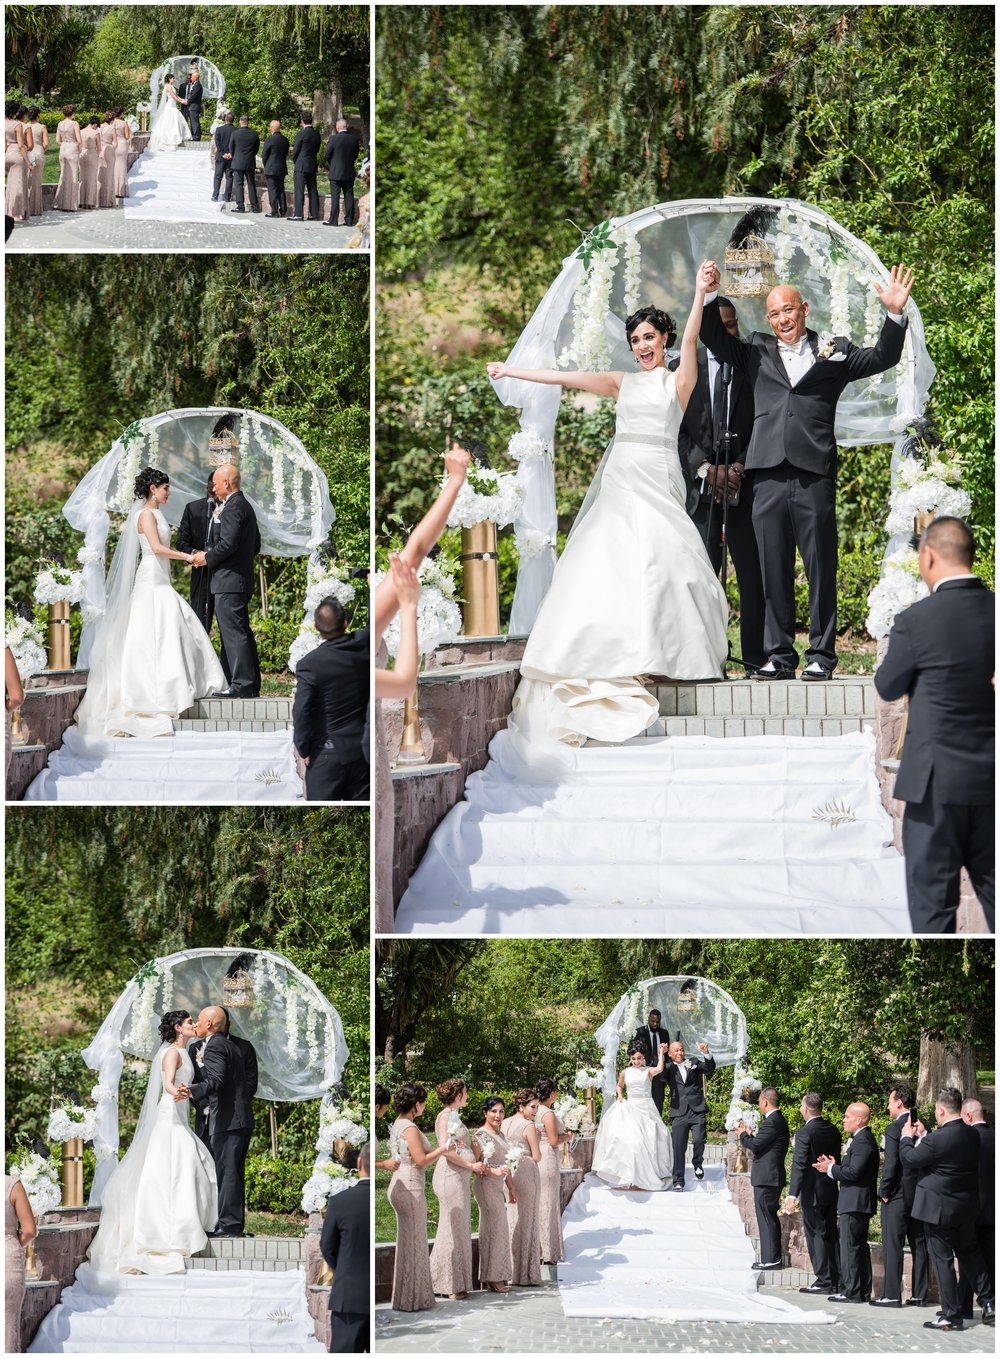 lunabellaphotos- new hall mansion-ceremony